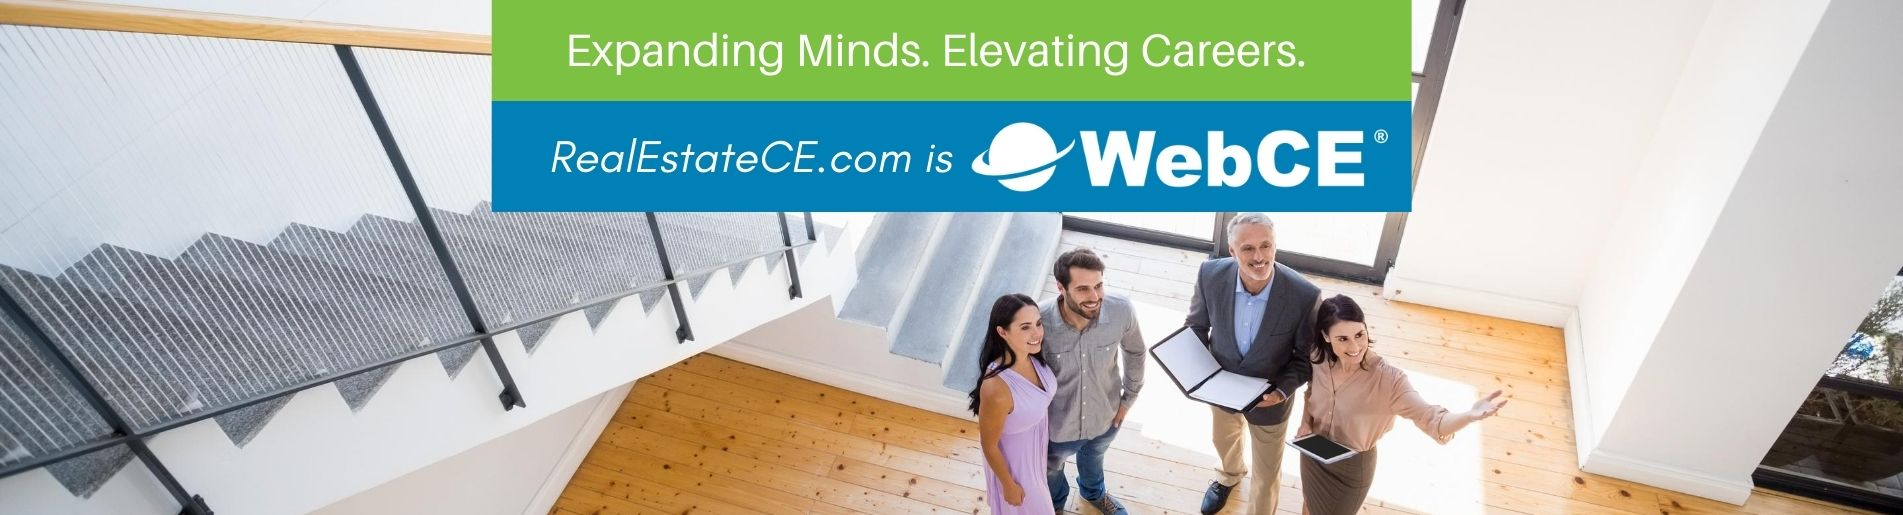 WebCE Online Real Estate Continuing Education